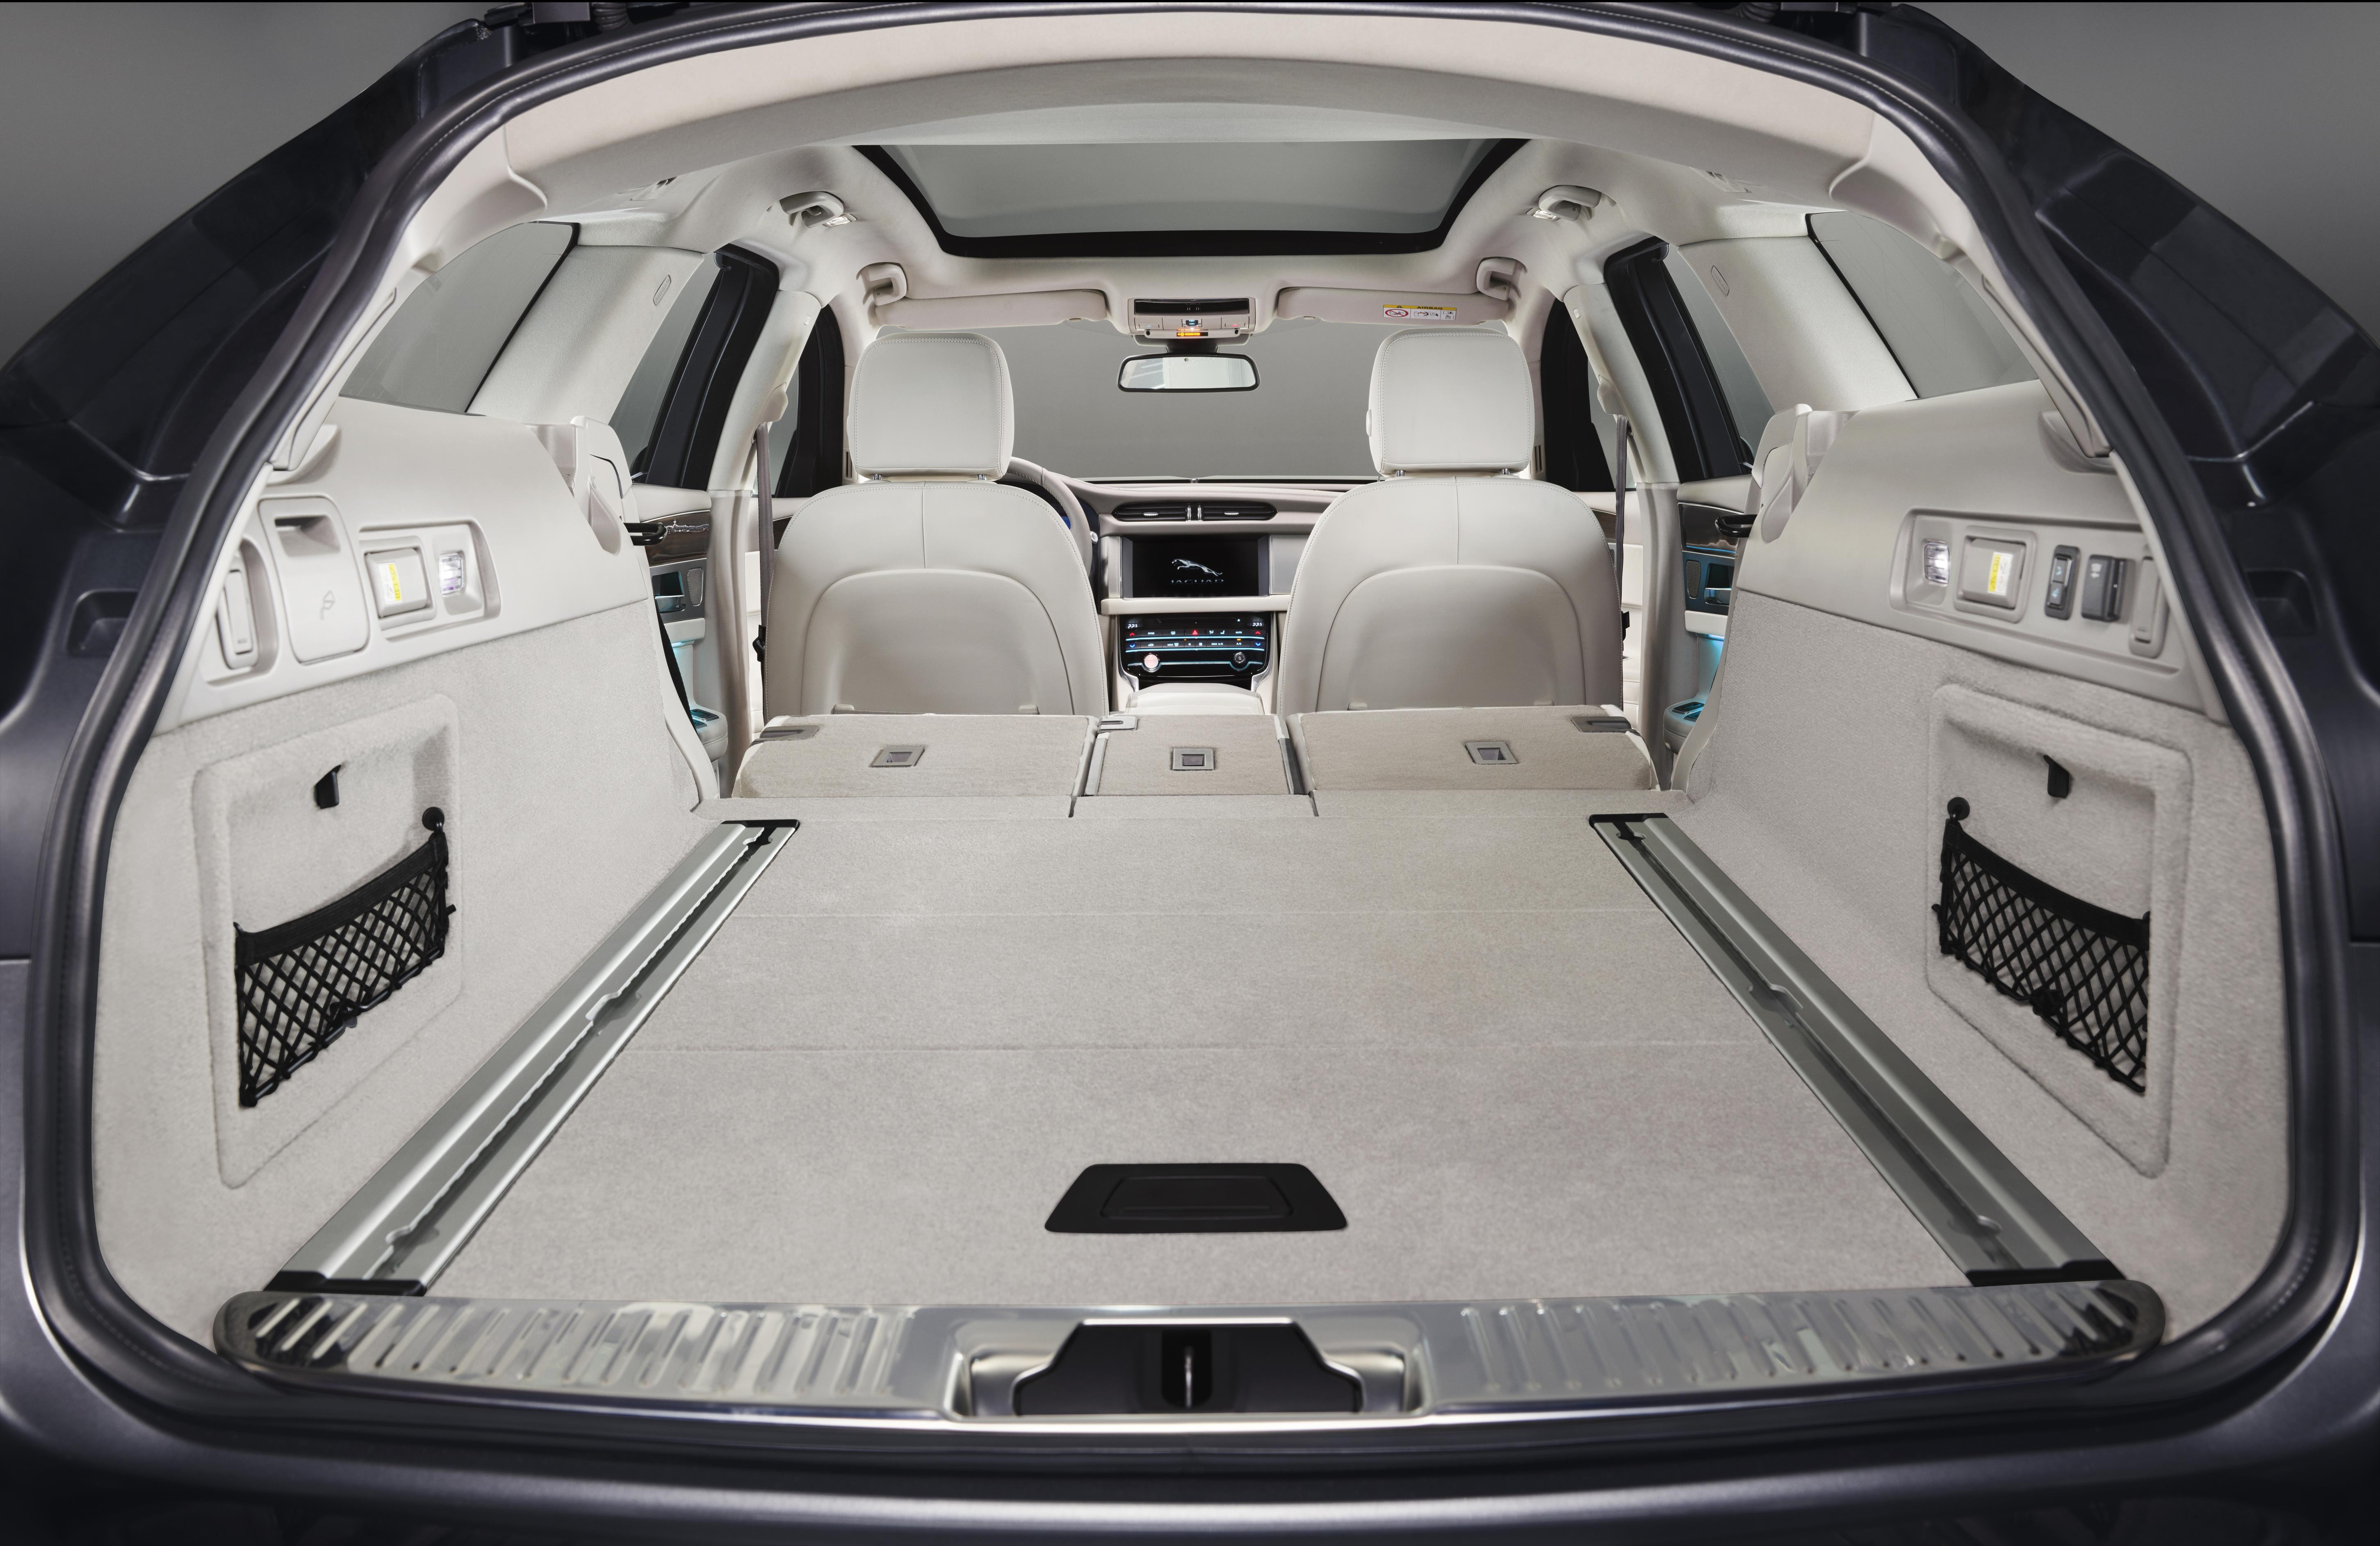 Rear load space of Jaguar XF sportbrake with the seats down flat